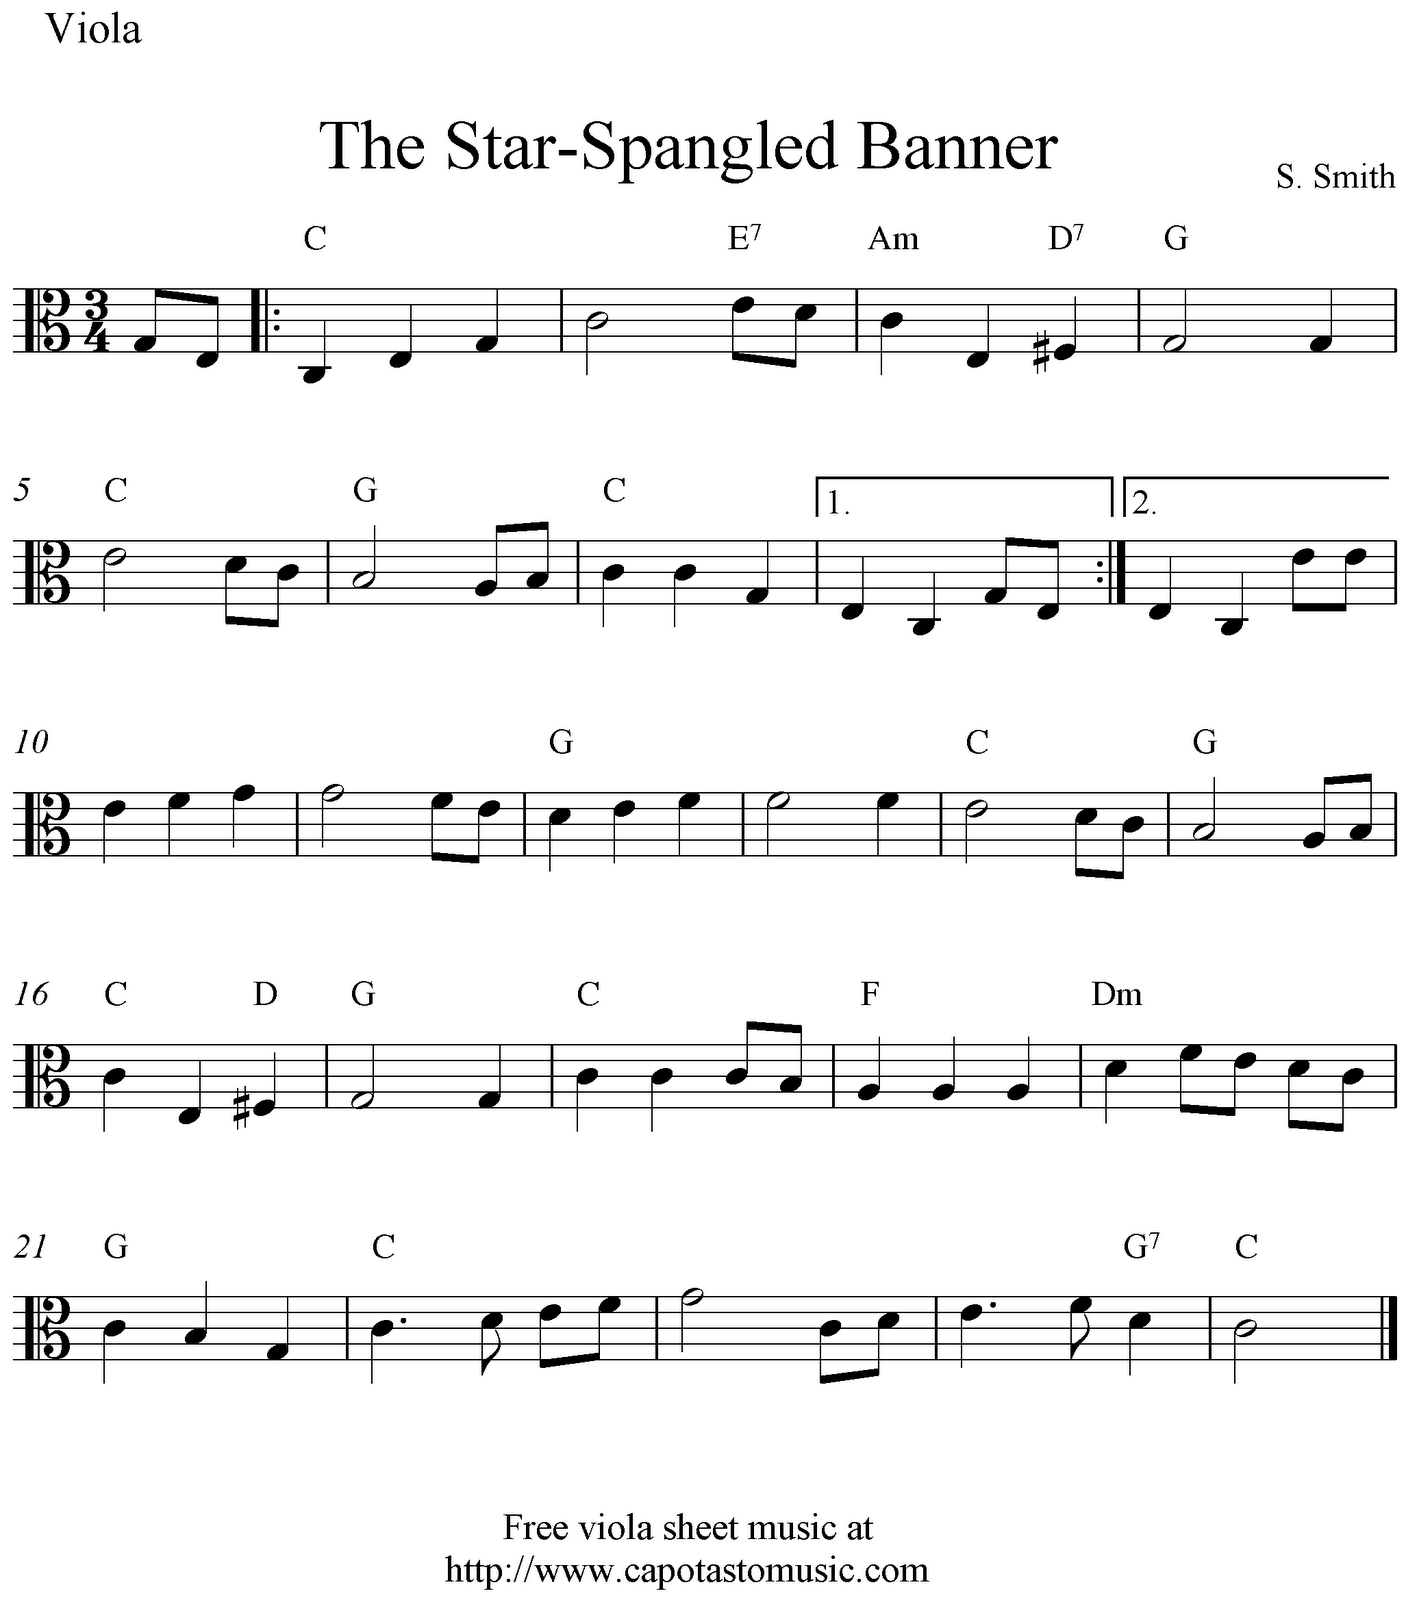 Free Printable Sheet Music Viola | Download Them Or Print - Viola Sheet Music Free Printable